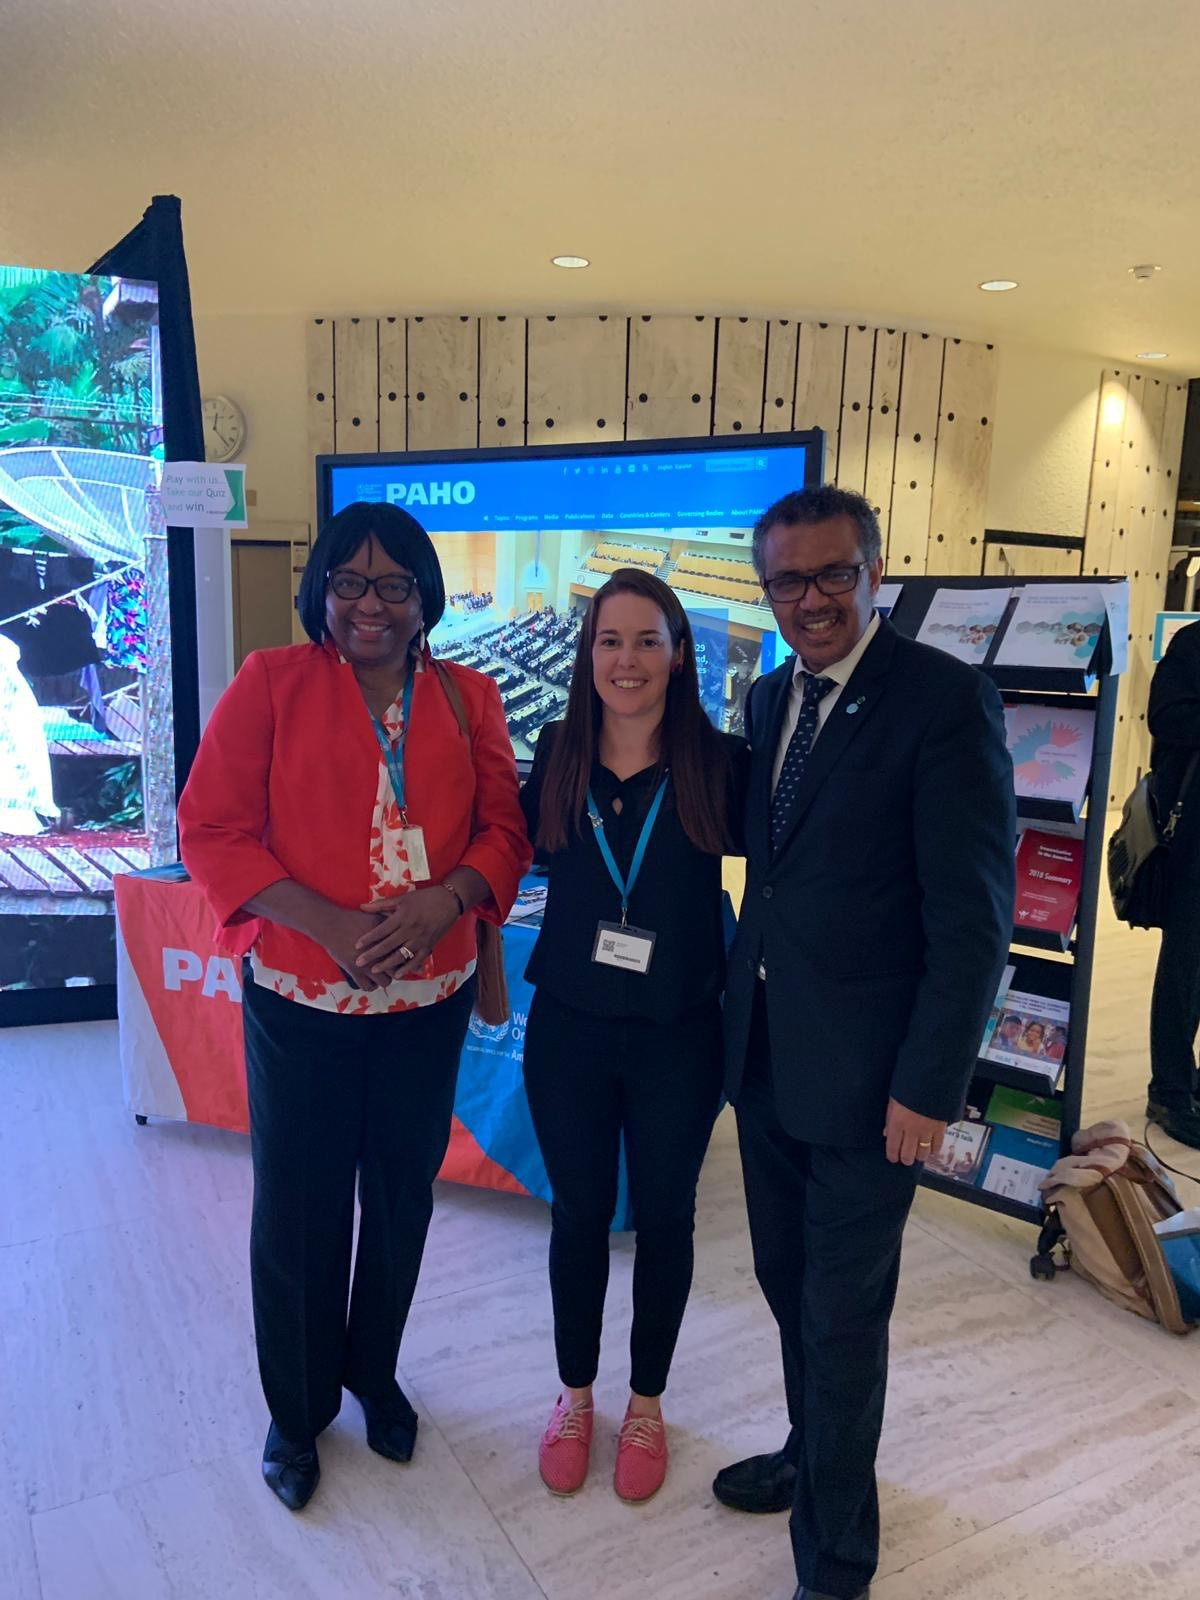 Alison Macintyre, Technical Lead – Health, WaterAid Australia, with Dr Tedros Adhanom Ghebreyesus, WHO Director-General at the World Health Assembly